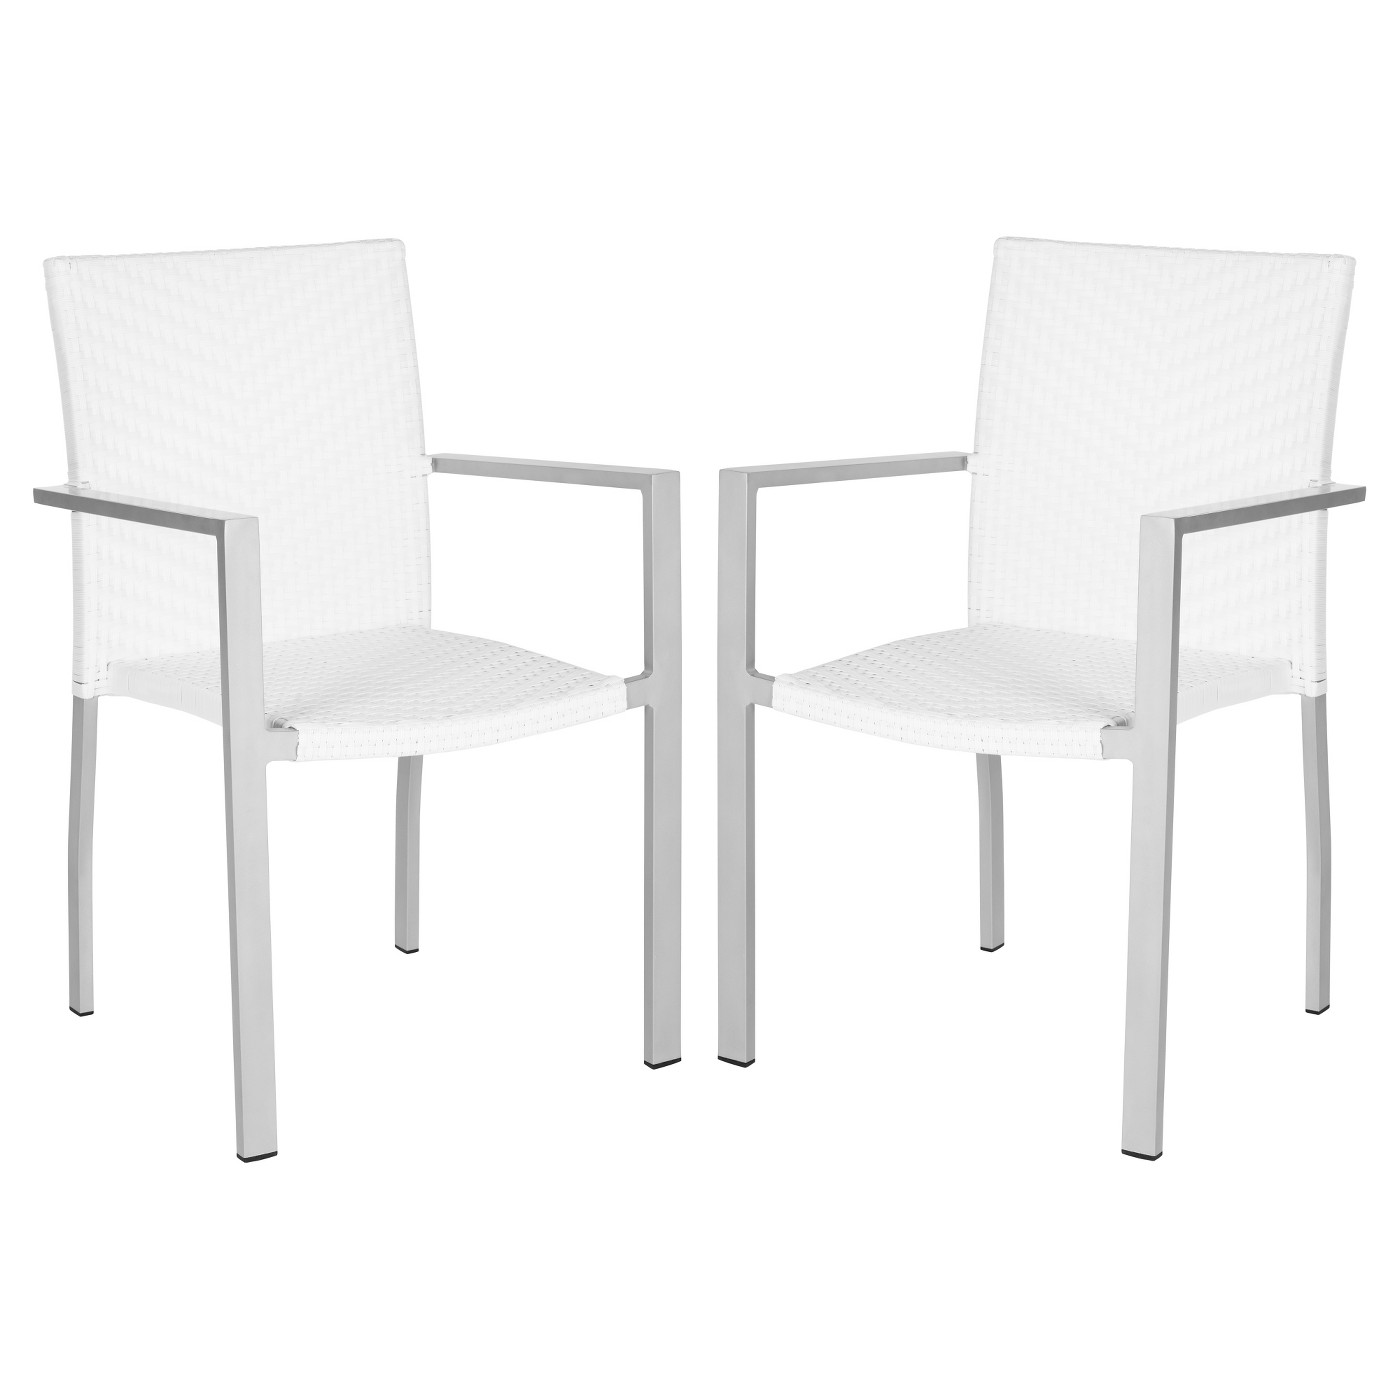 White outdoor chairs